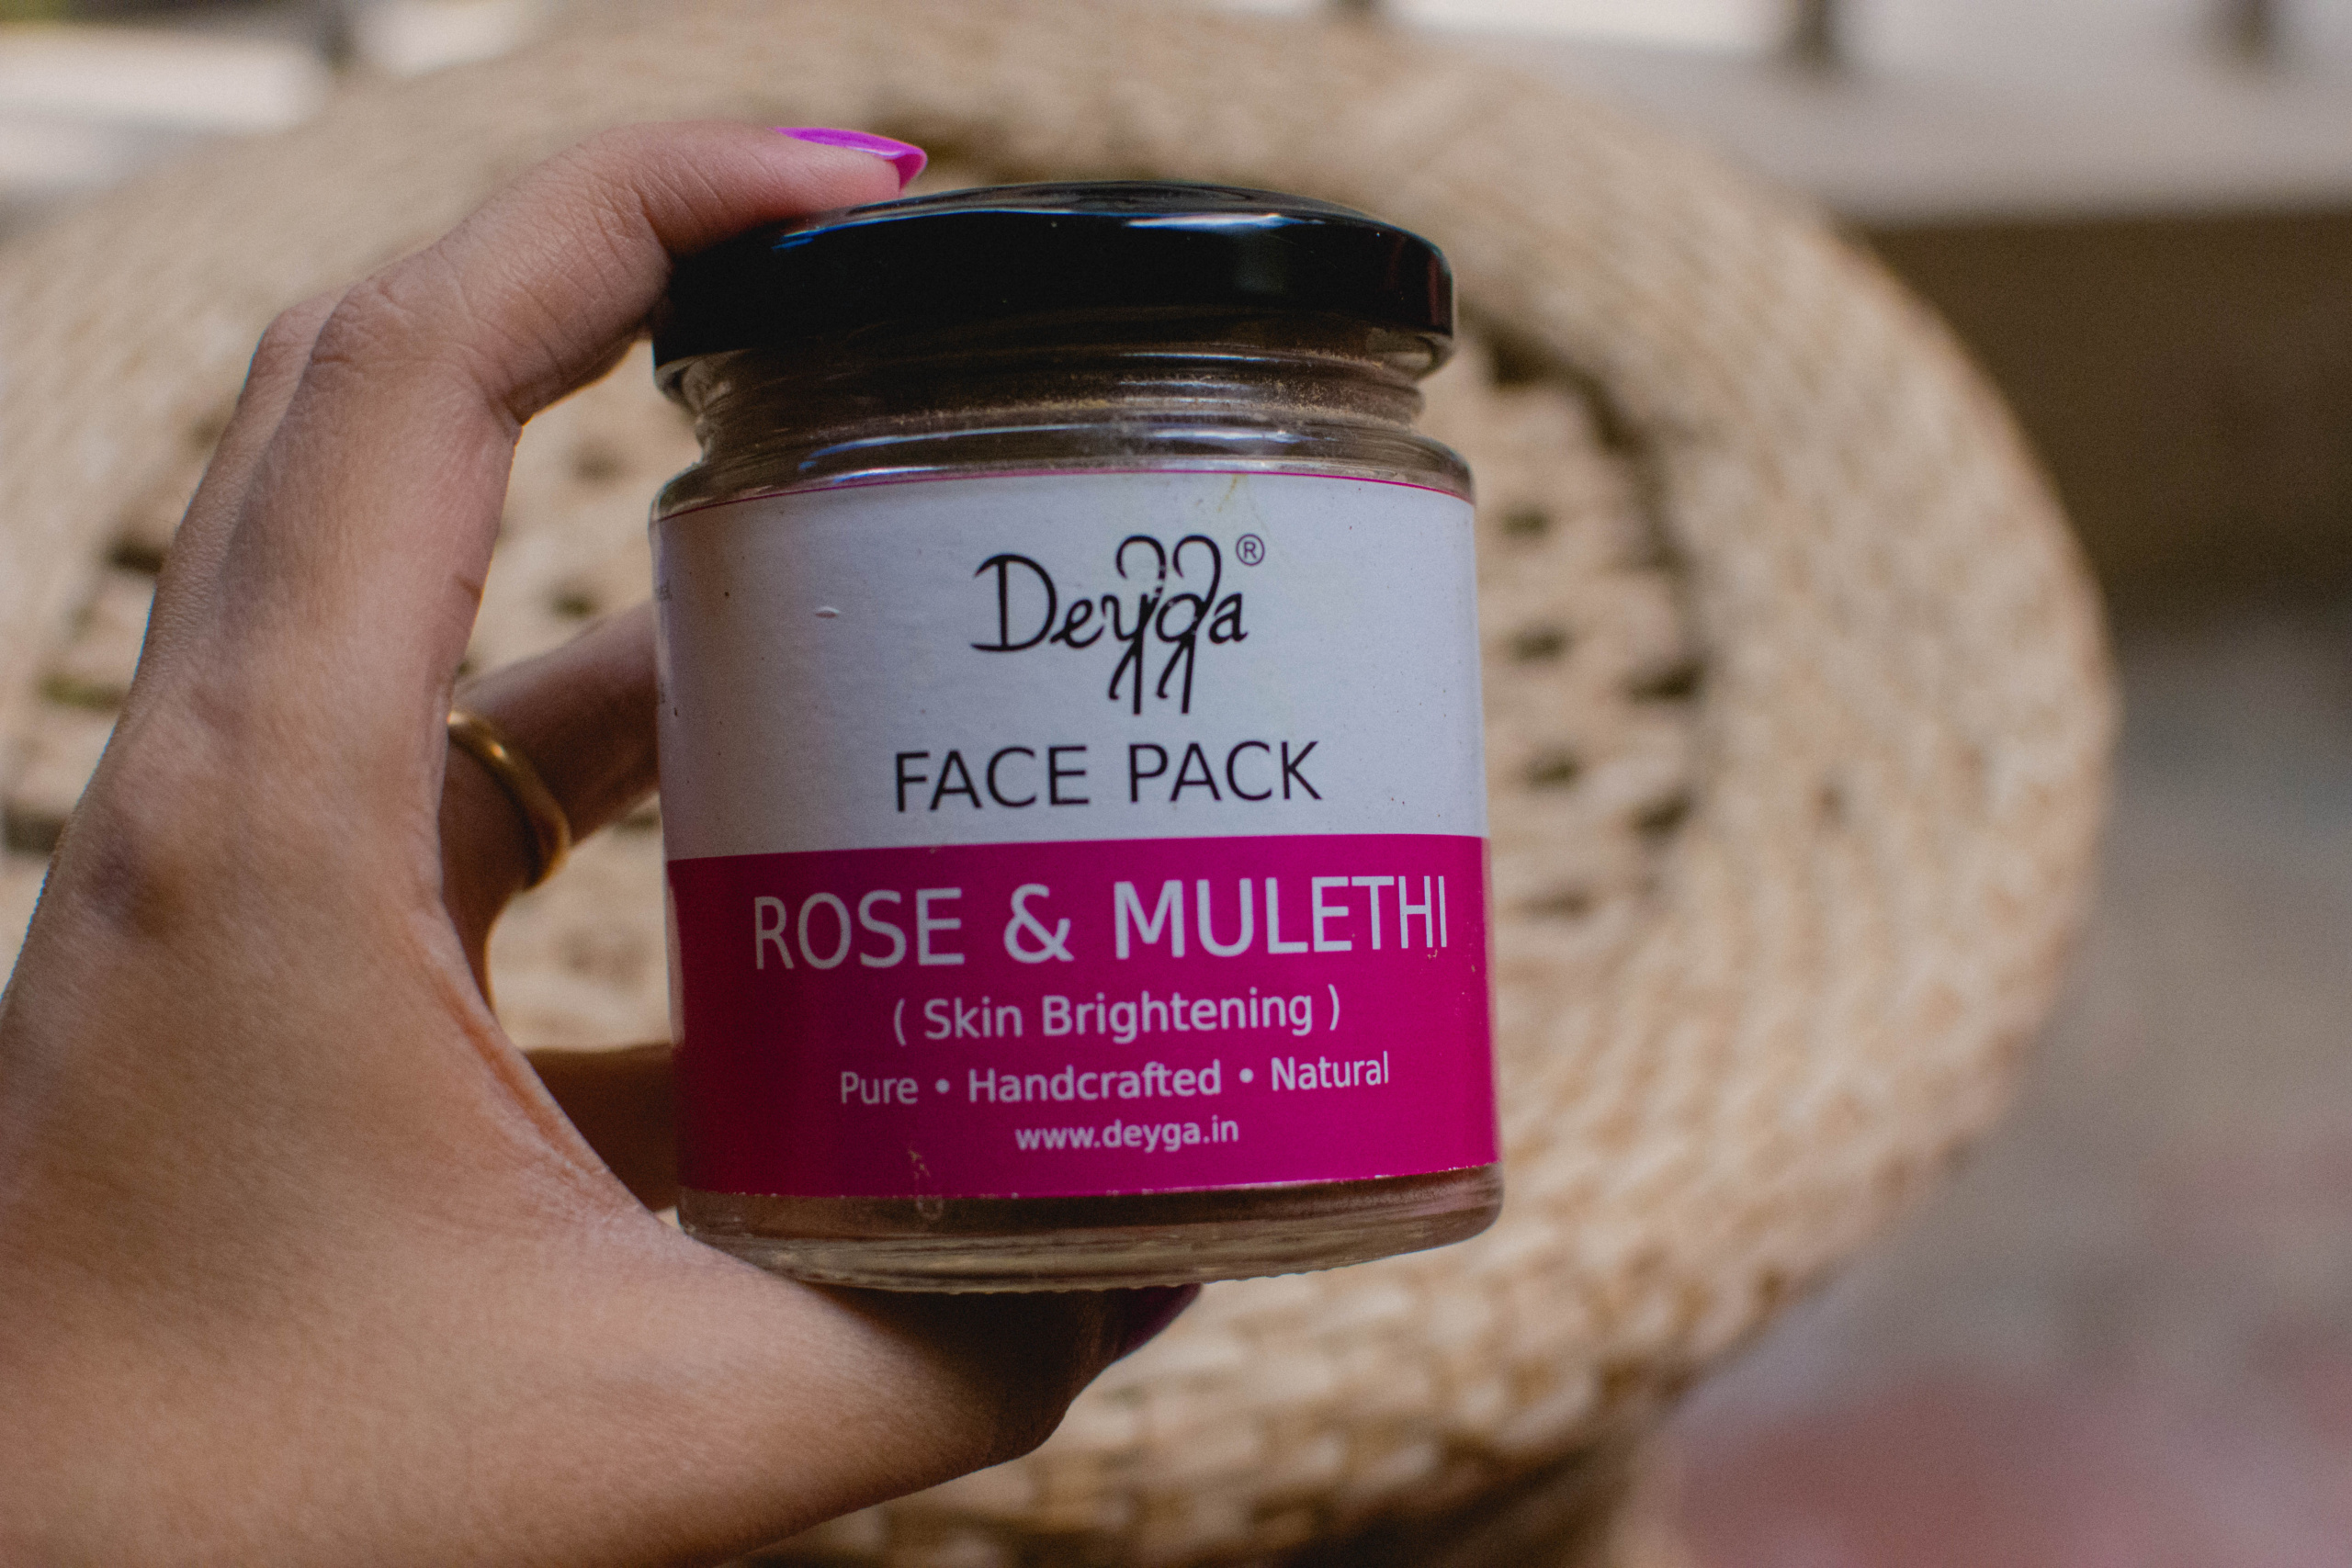 Deyga Rose and Mulethi Face Pack Review | Cherry On Top Blog